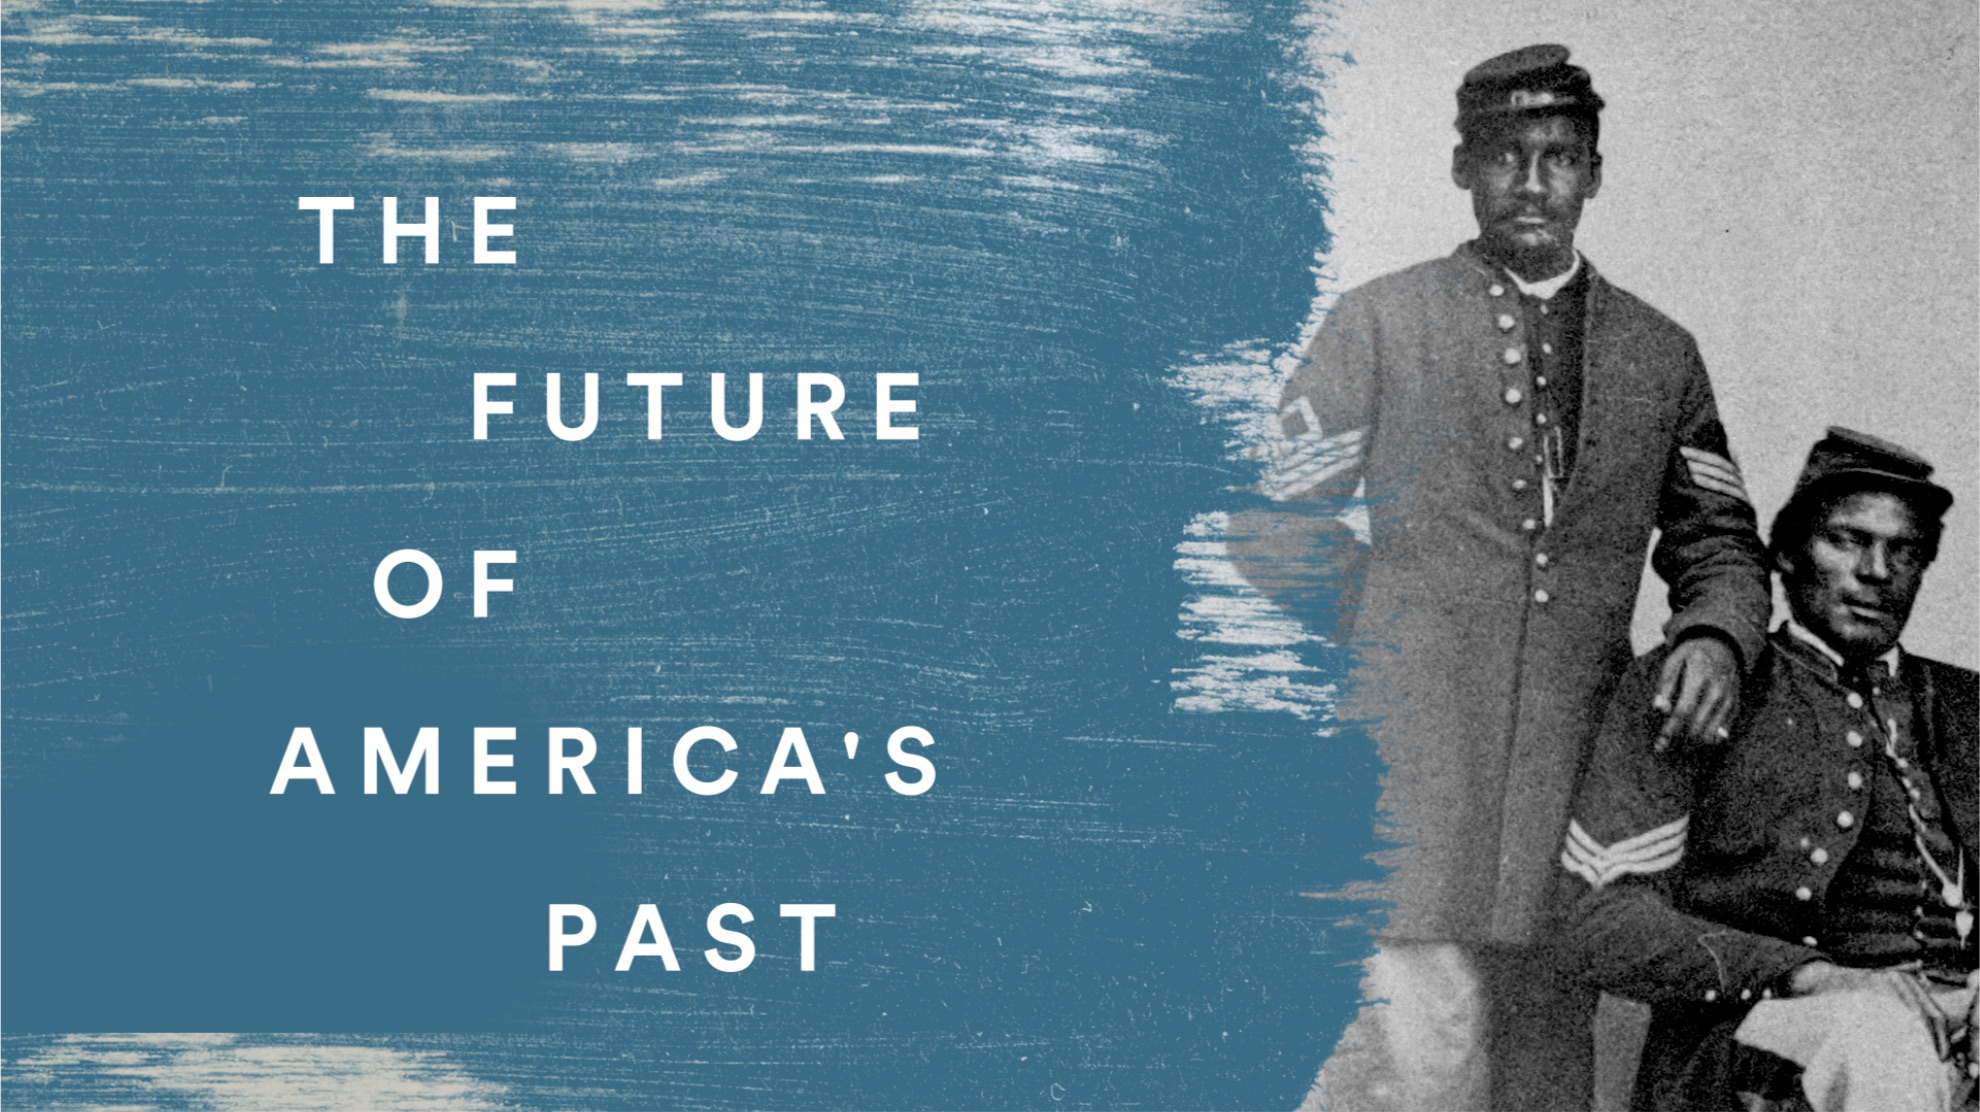 The Future of America's Past - This history-meets-travel show (think Parts Unknown meets American history) premiered on public television stations across this country in fall 2019.We take viewers to the fronts lines of American history visiting sites where some of the most difficult chapters of our national past took place. Then, we learn from public historians there how they engage the public with that past. Hosted by historian Ed Ayers (co-host of the hit podcast BackStory), this show explores places familiar and unknown, memorialized and neglected.Presented by VPM. Major funding from the Virginia Foundation for Public Media. Distributed to PBS member stations by American Public Television.Premiered September 2019Visit the show's site →